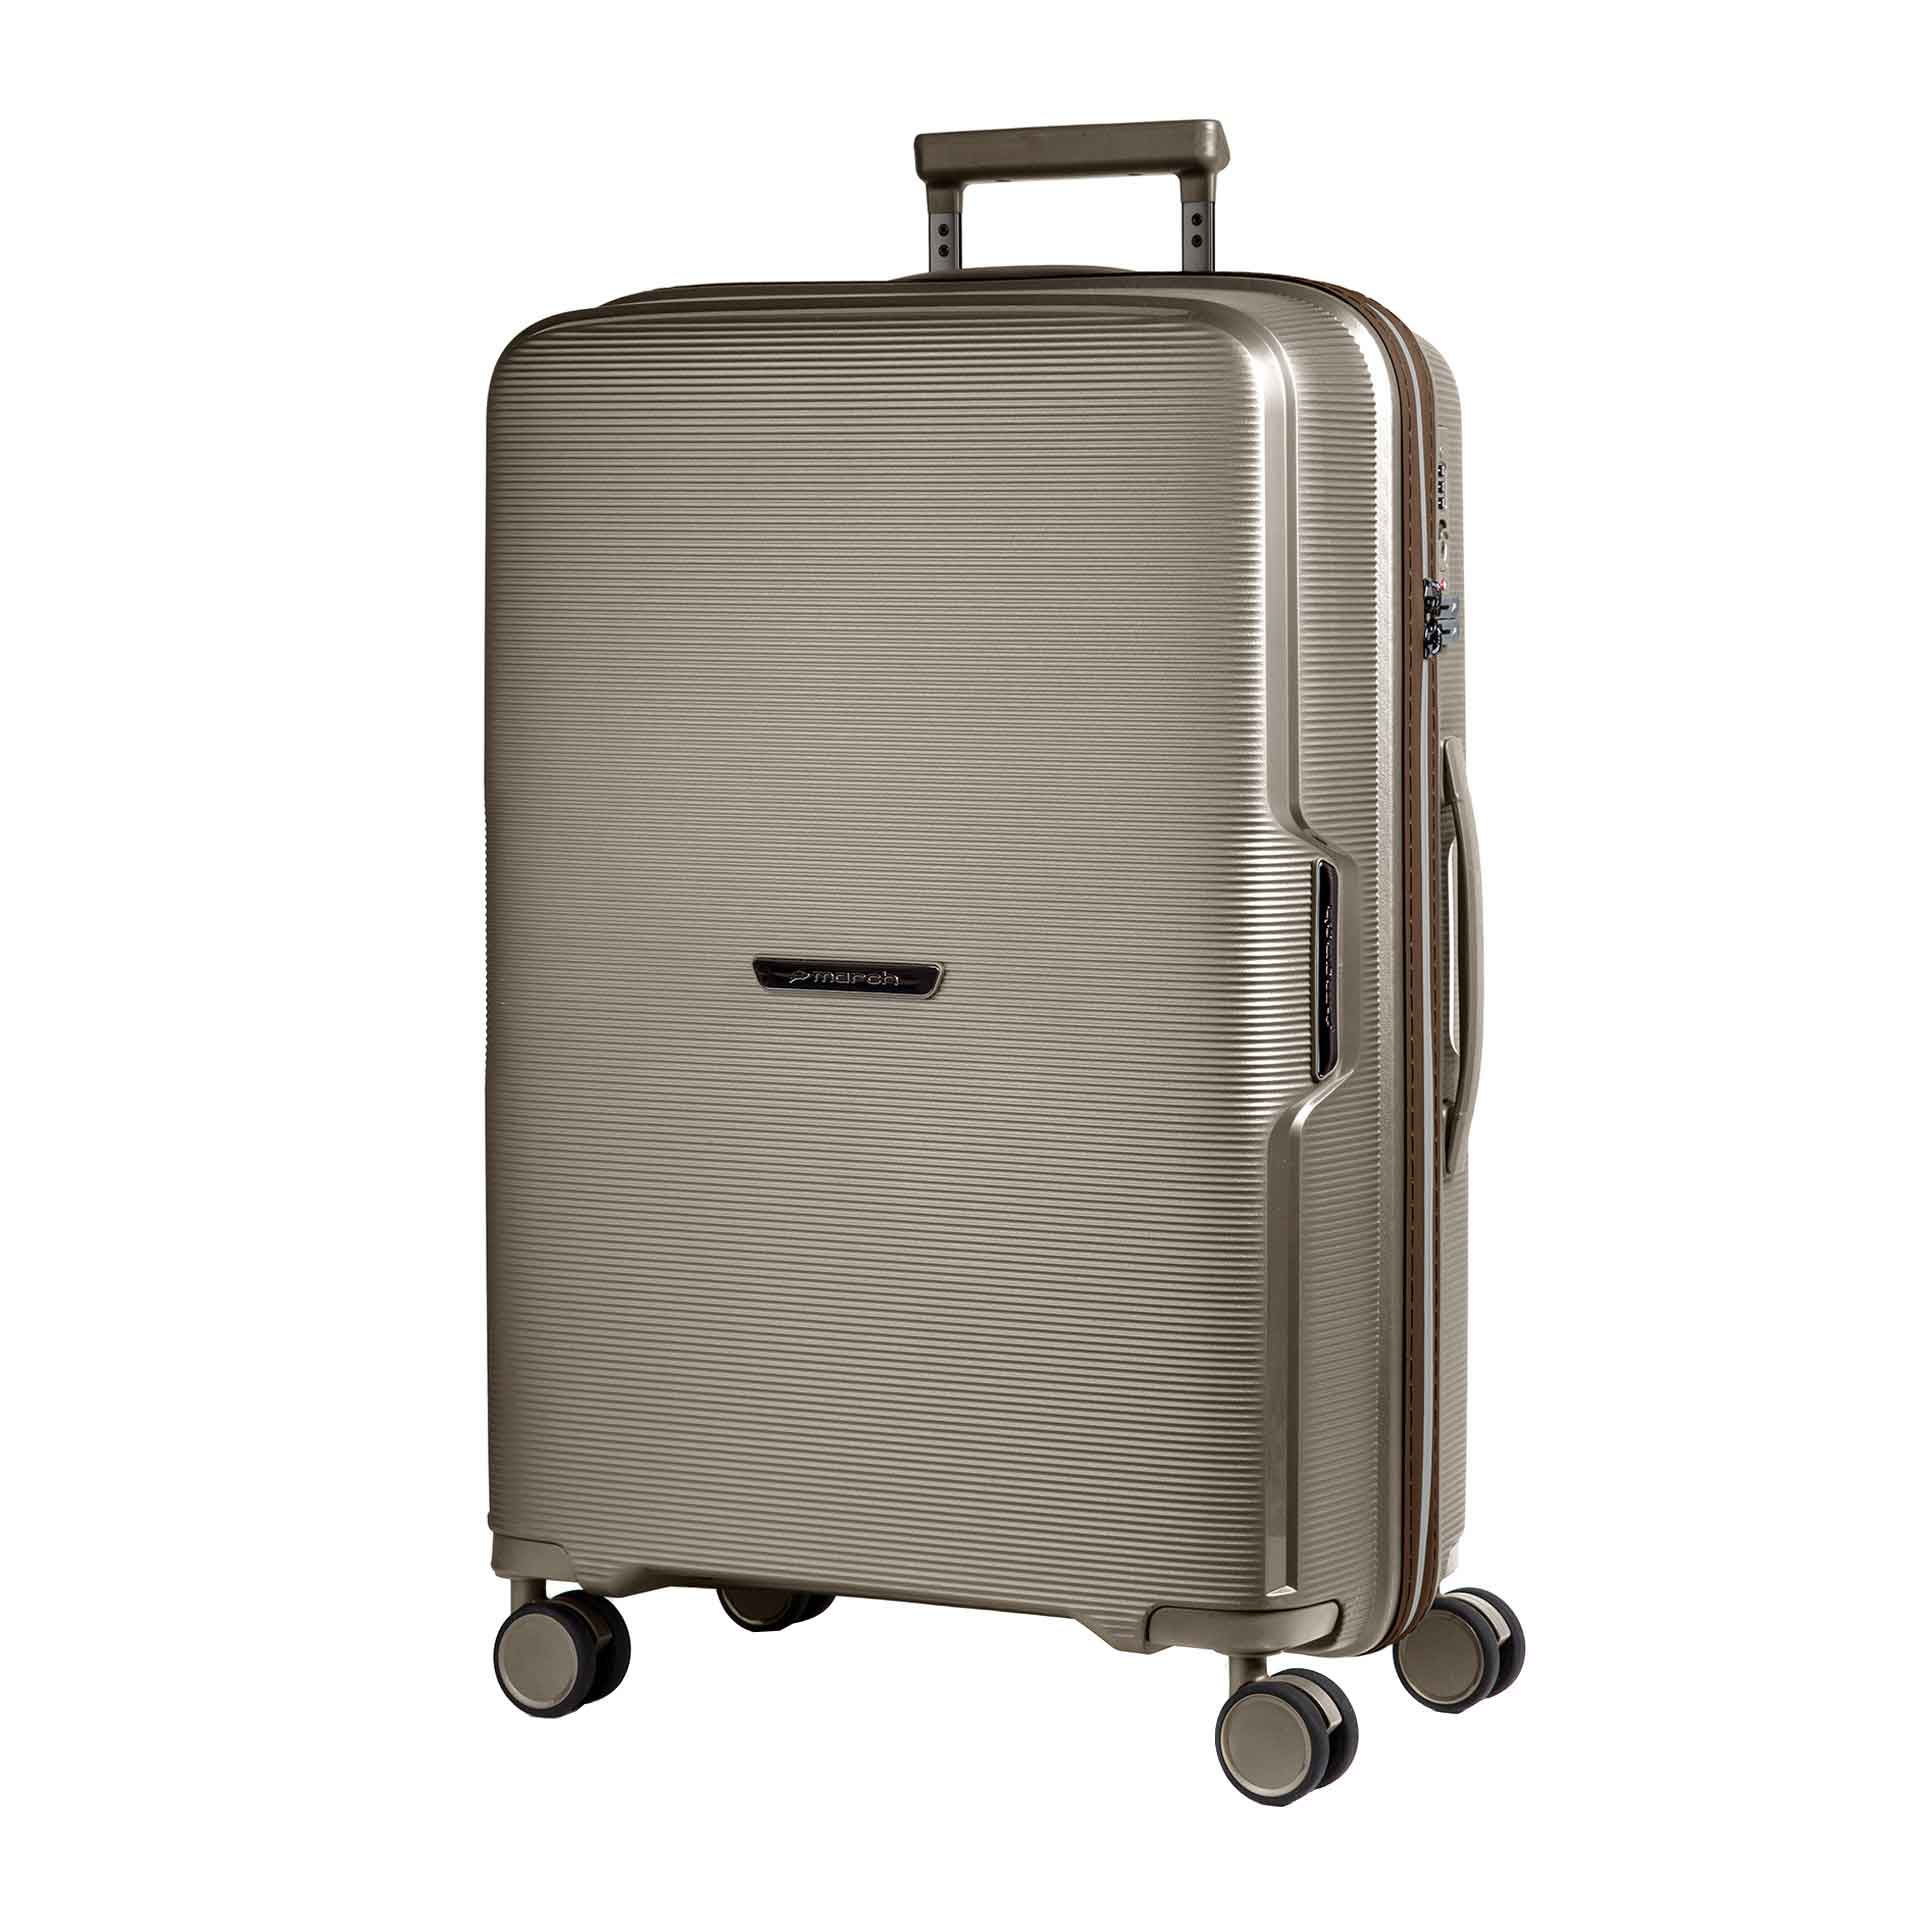 March Bel Air 4-Rad Trolley S silver bronze/ creme accent